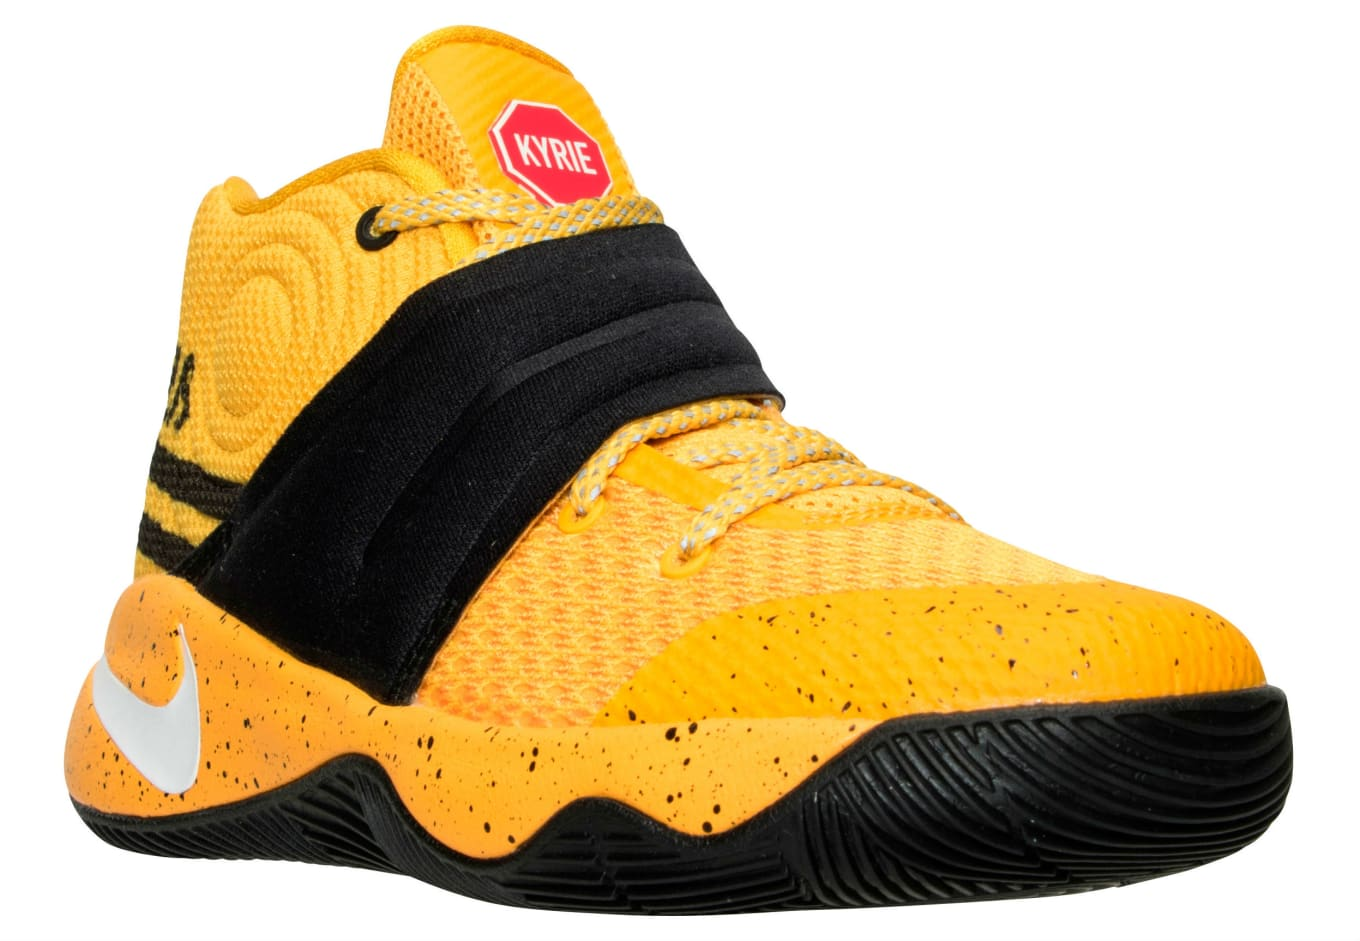 cc0329c83b95 ... aliexpress yellow and black school bus nike kyrie 2s. 03907 e009b